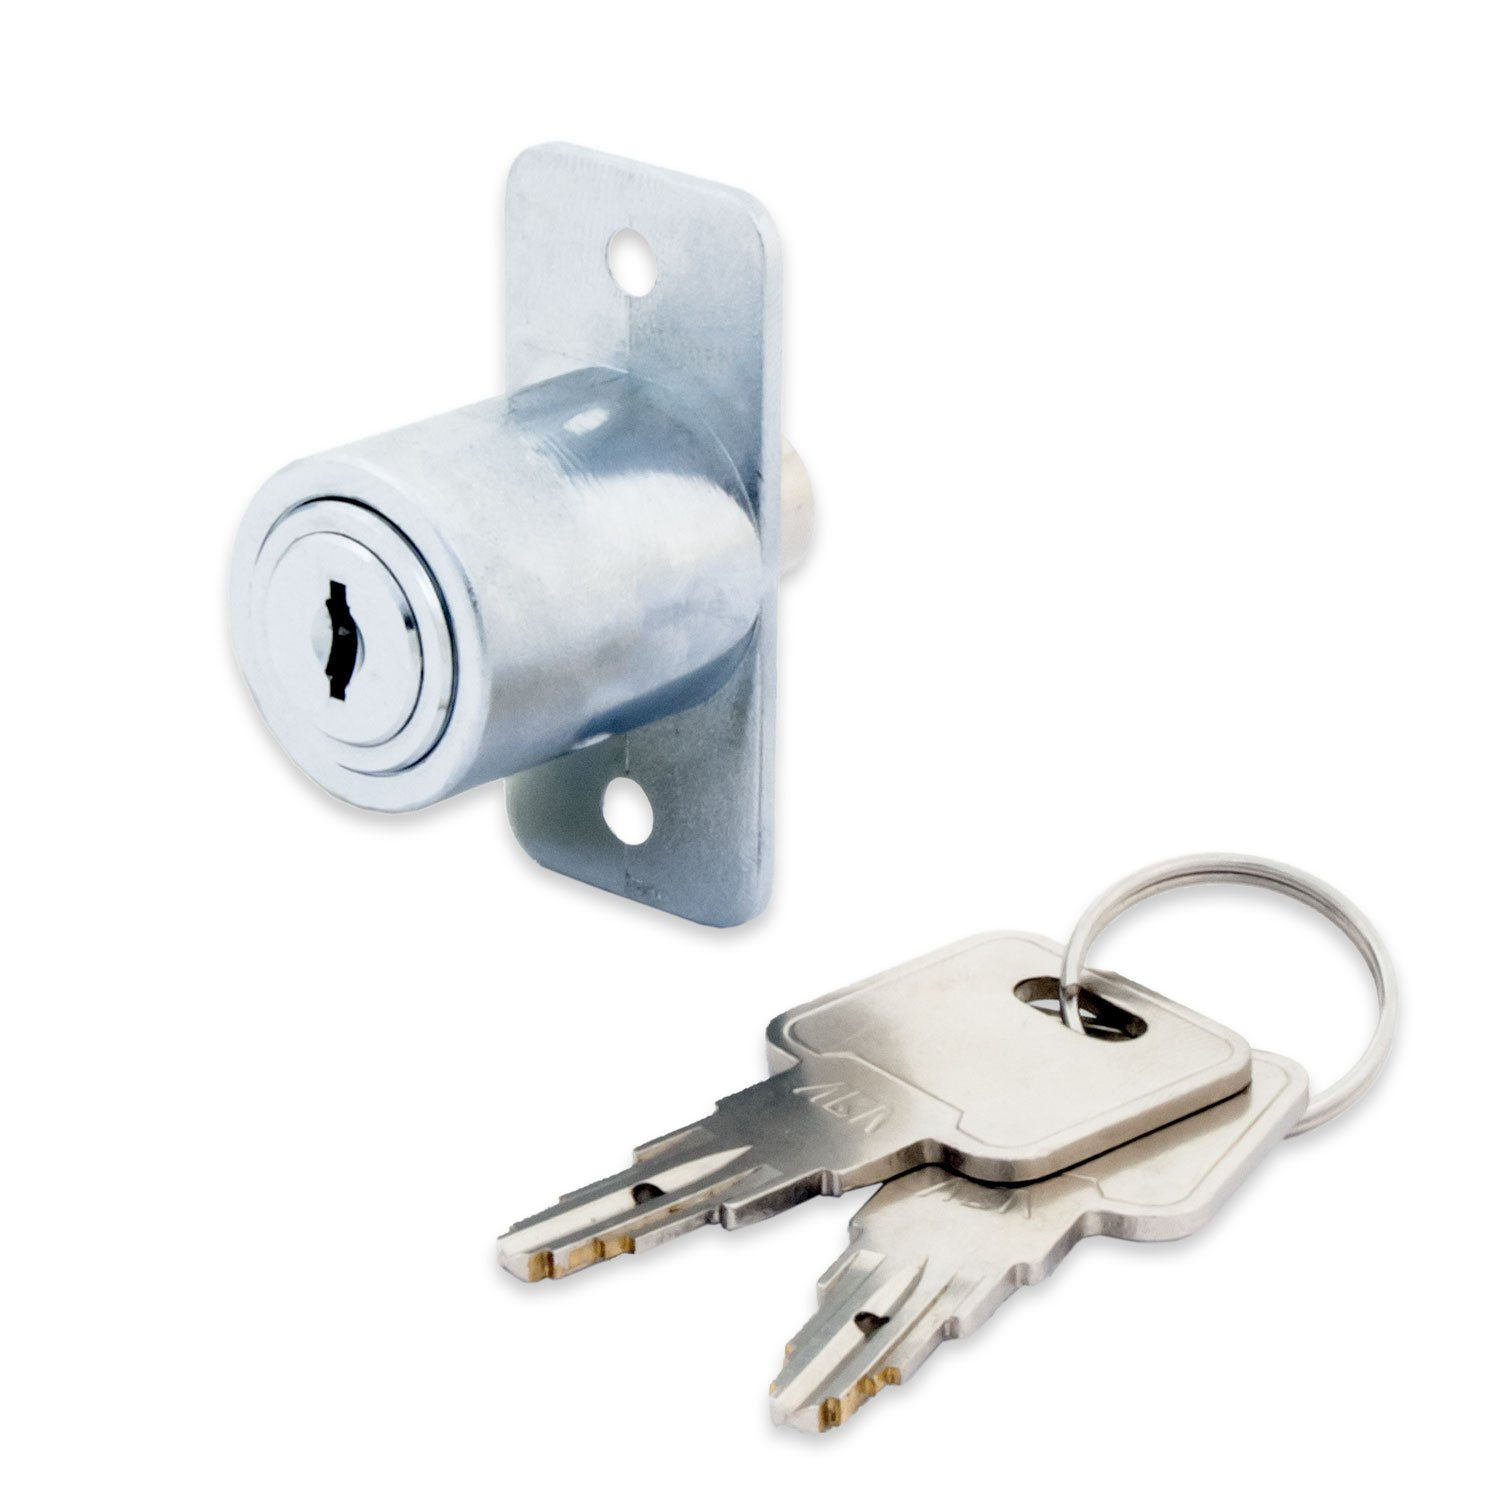 FJM Security 1635-KA Sliding Door Cabinet Lock with Chrome Finish, Keyed Alike FJM-1635A